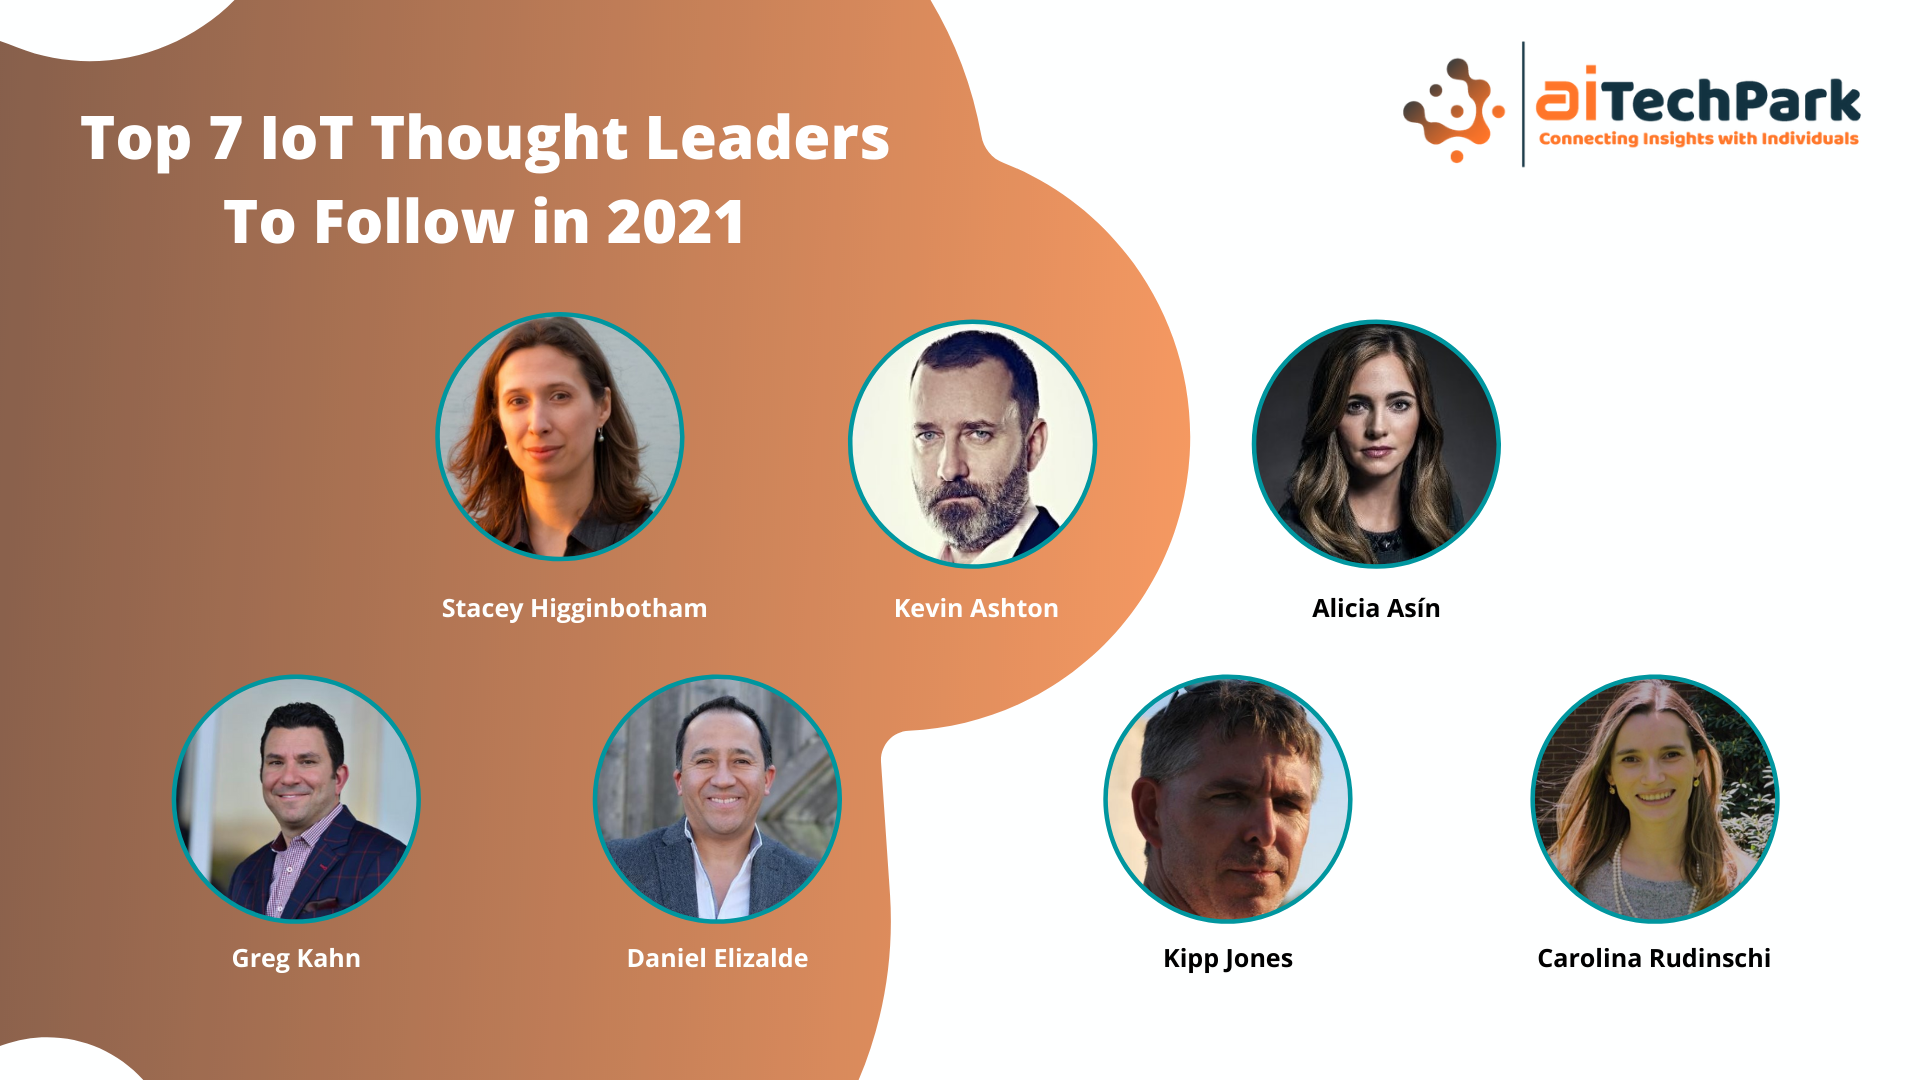 Top 7 IoT Thought Leaders to Follow in 2021